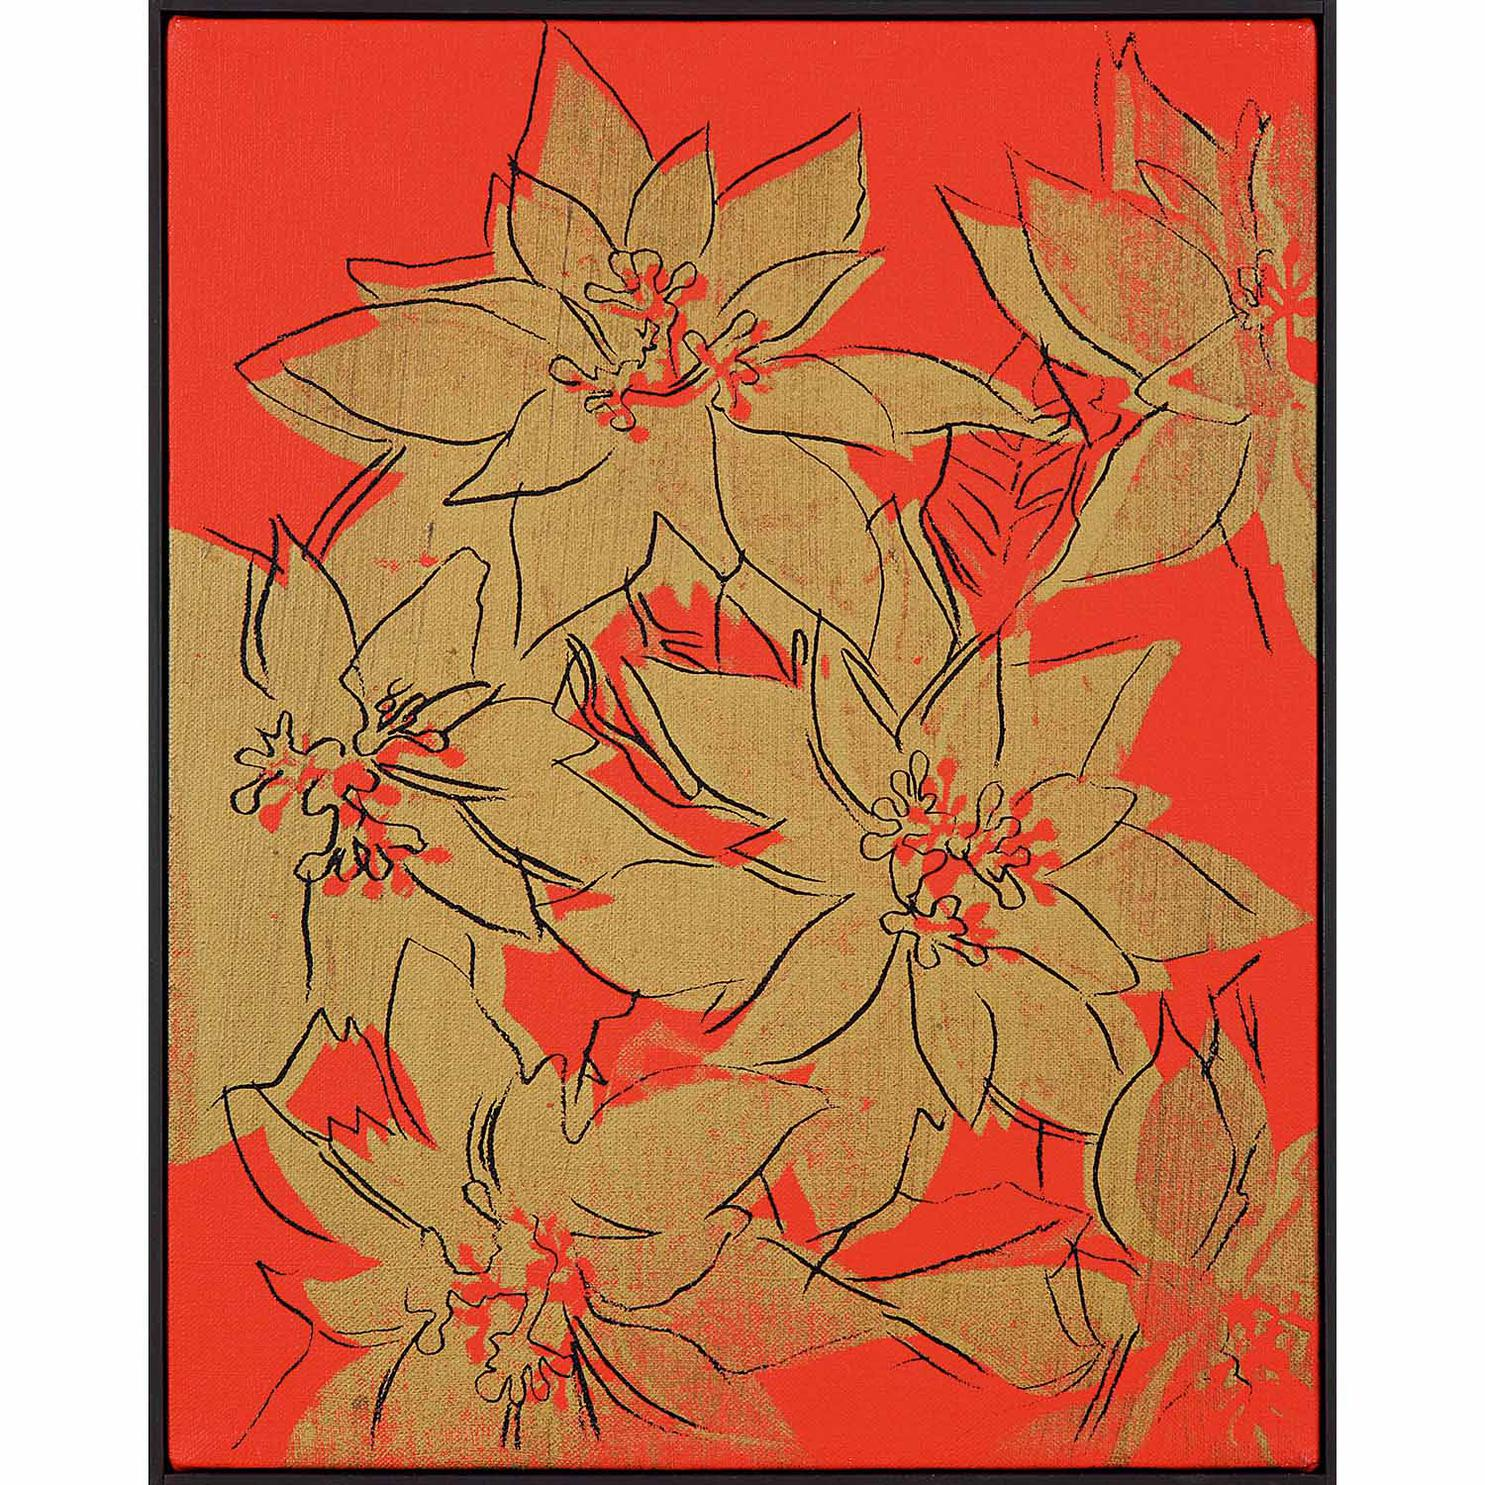 Andy Warhol-Poinsettias-1982